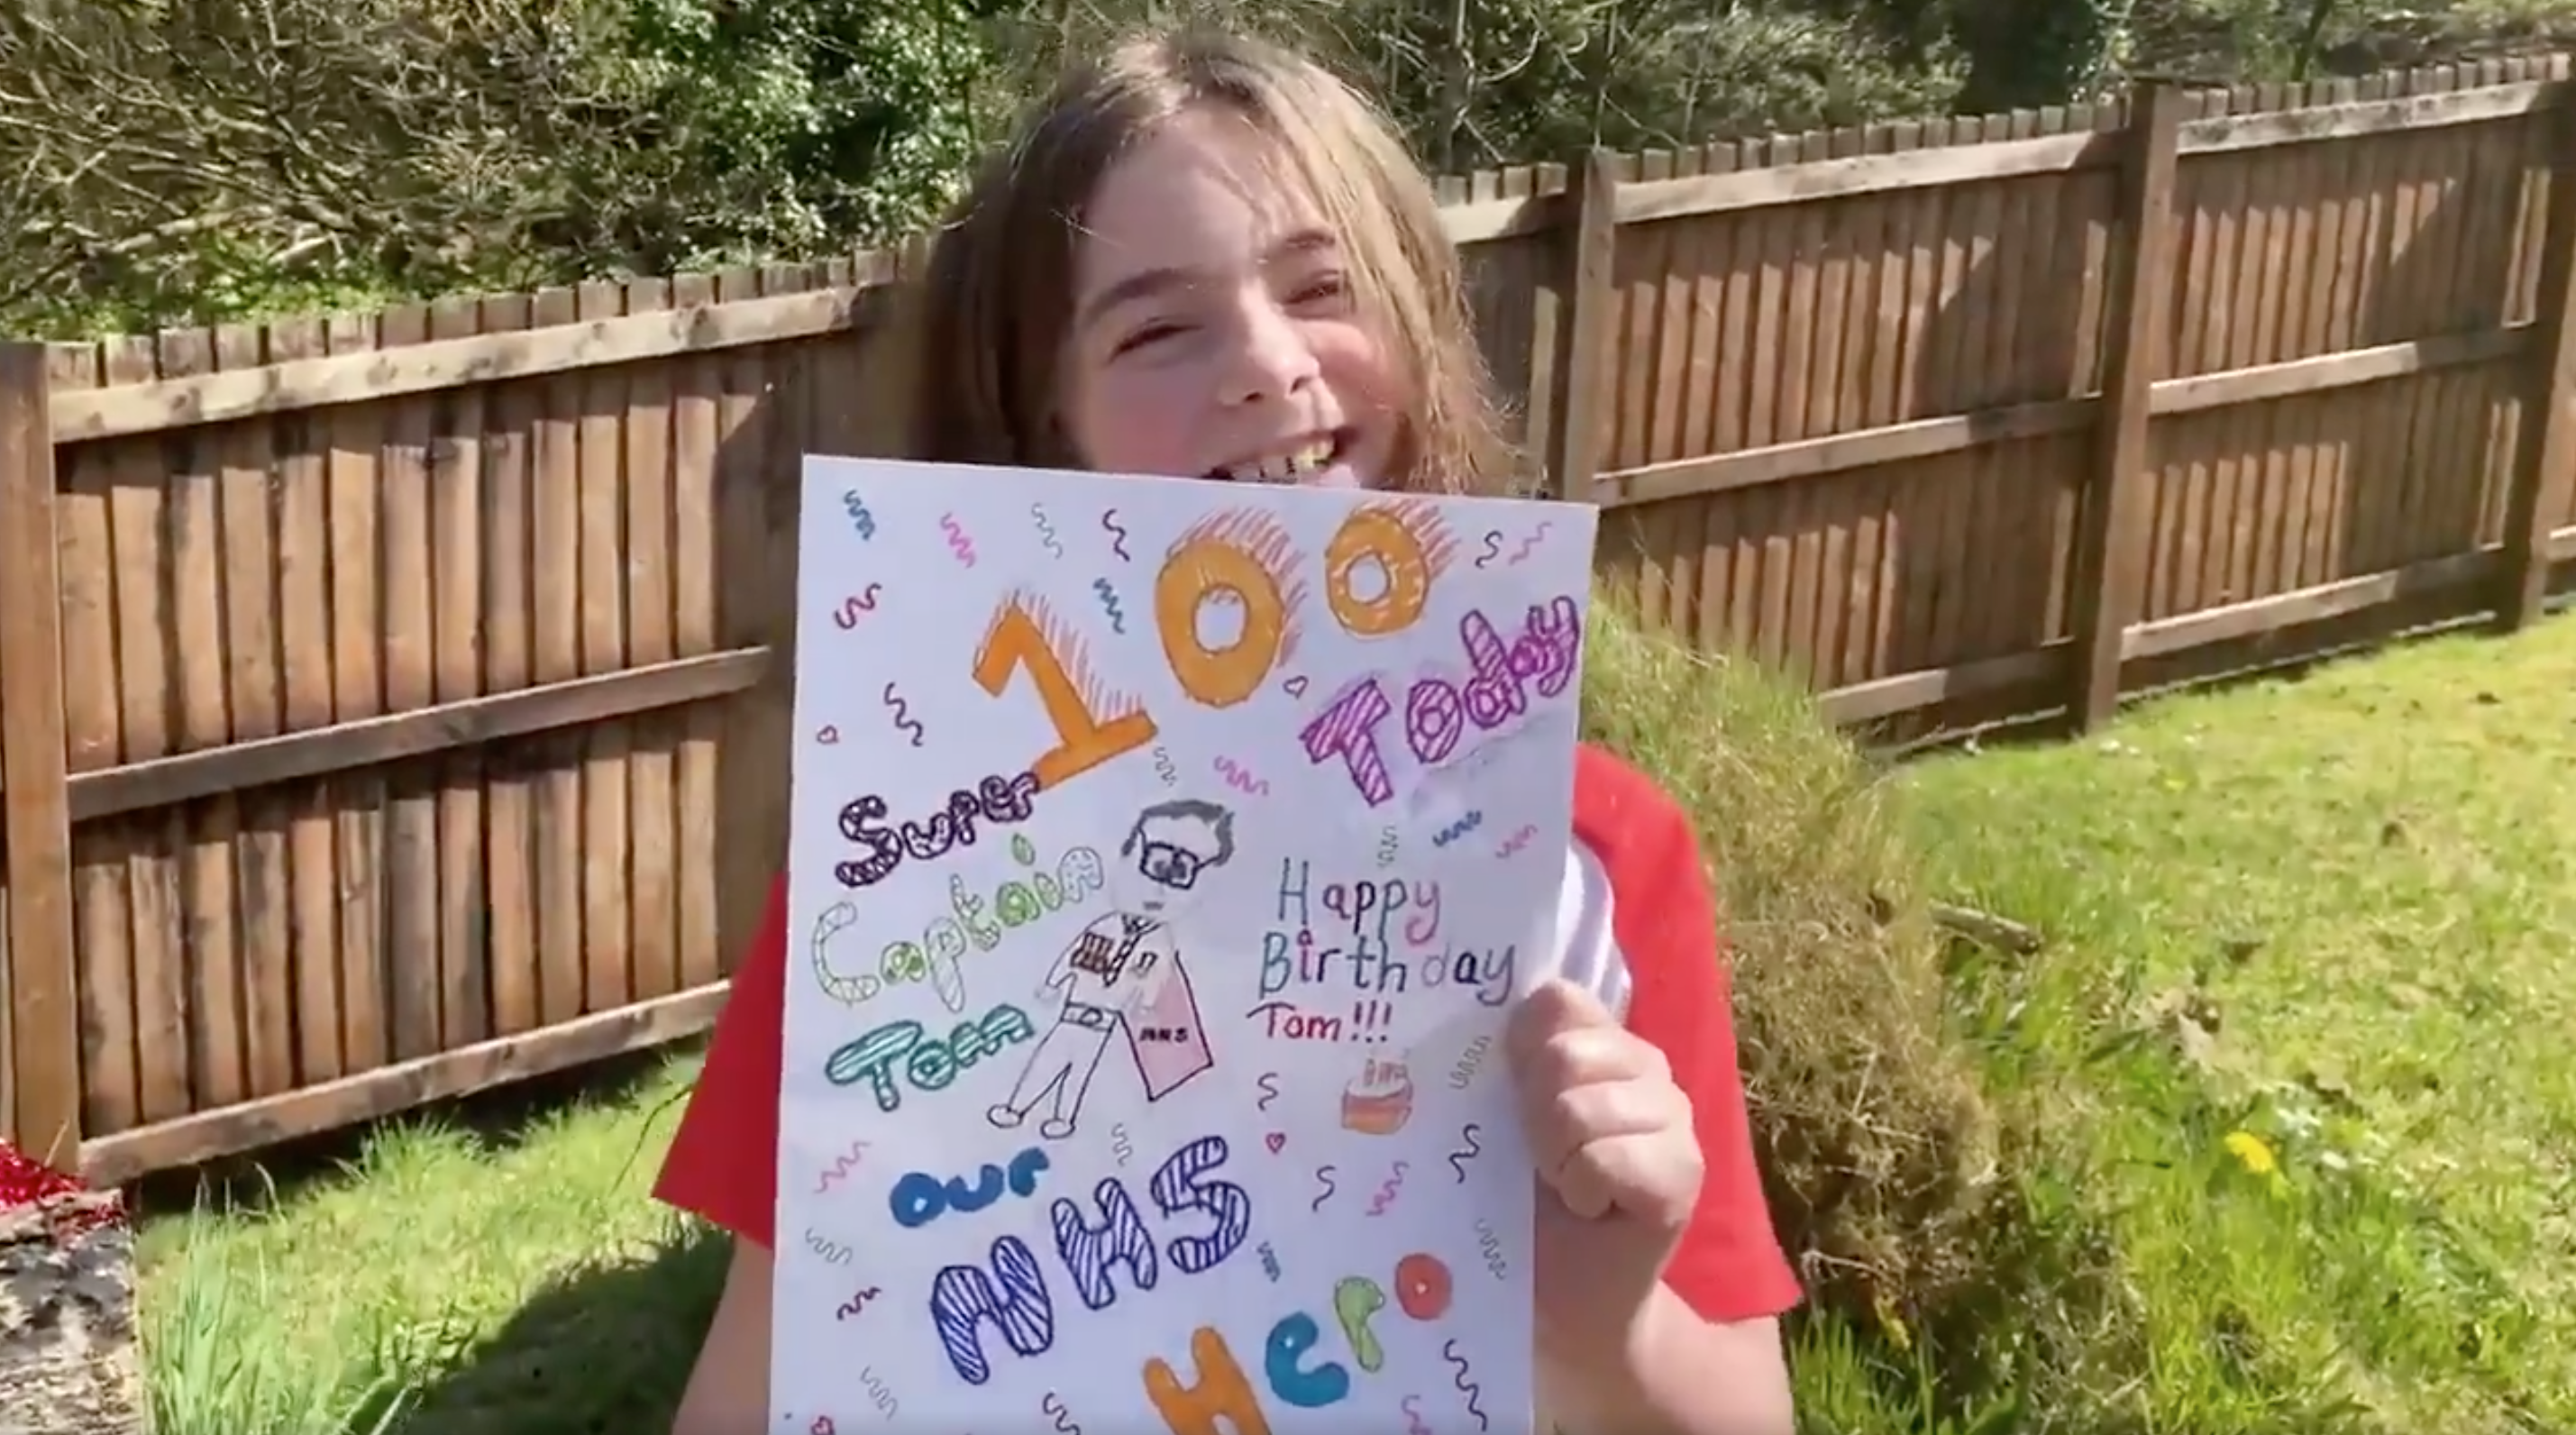 Above: Reegan Davies showing the birthday card she has created for Captain Tom for his imminent 100thbirthday.